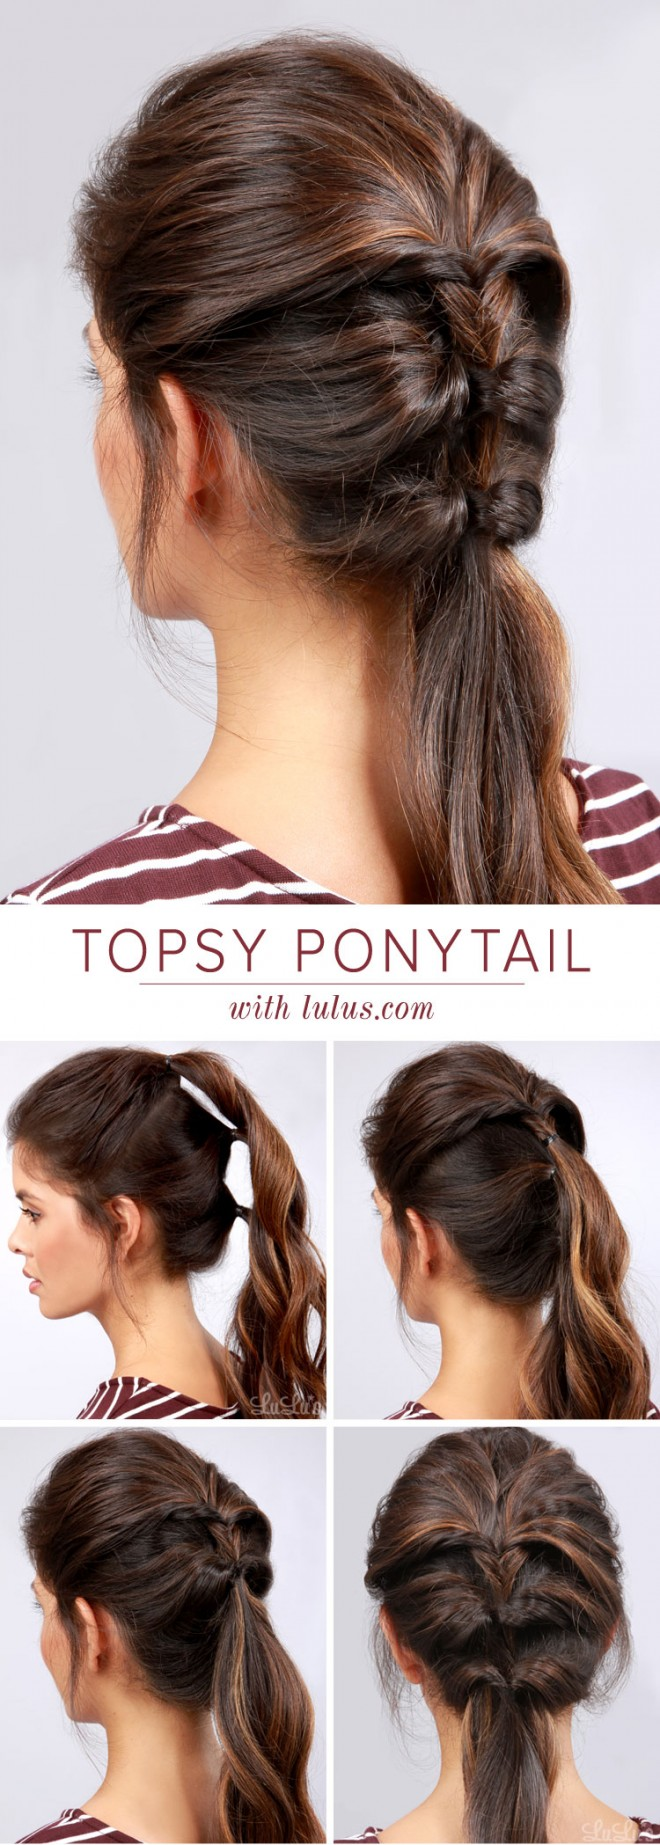 Topsy Pony Tail